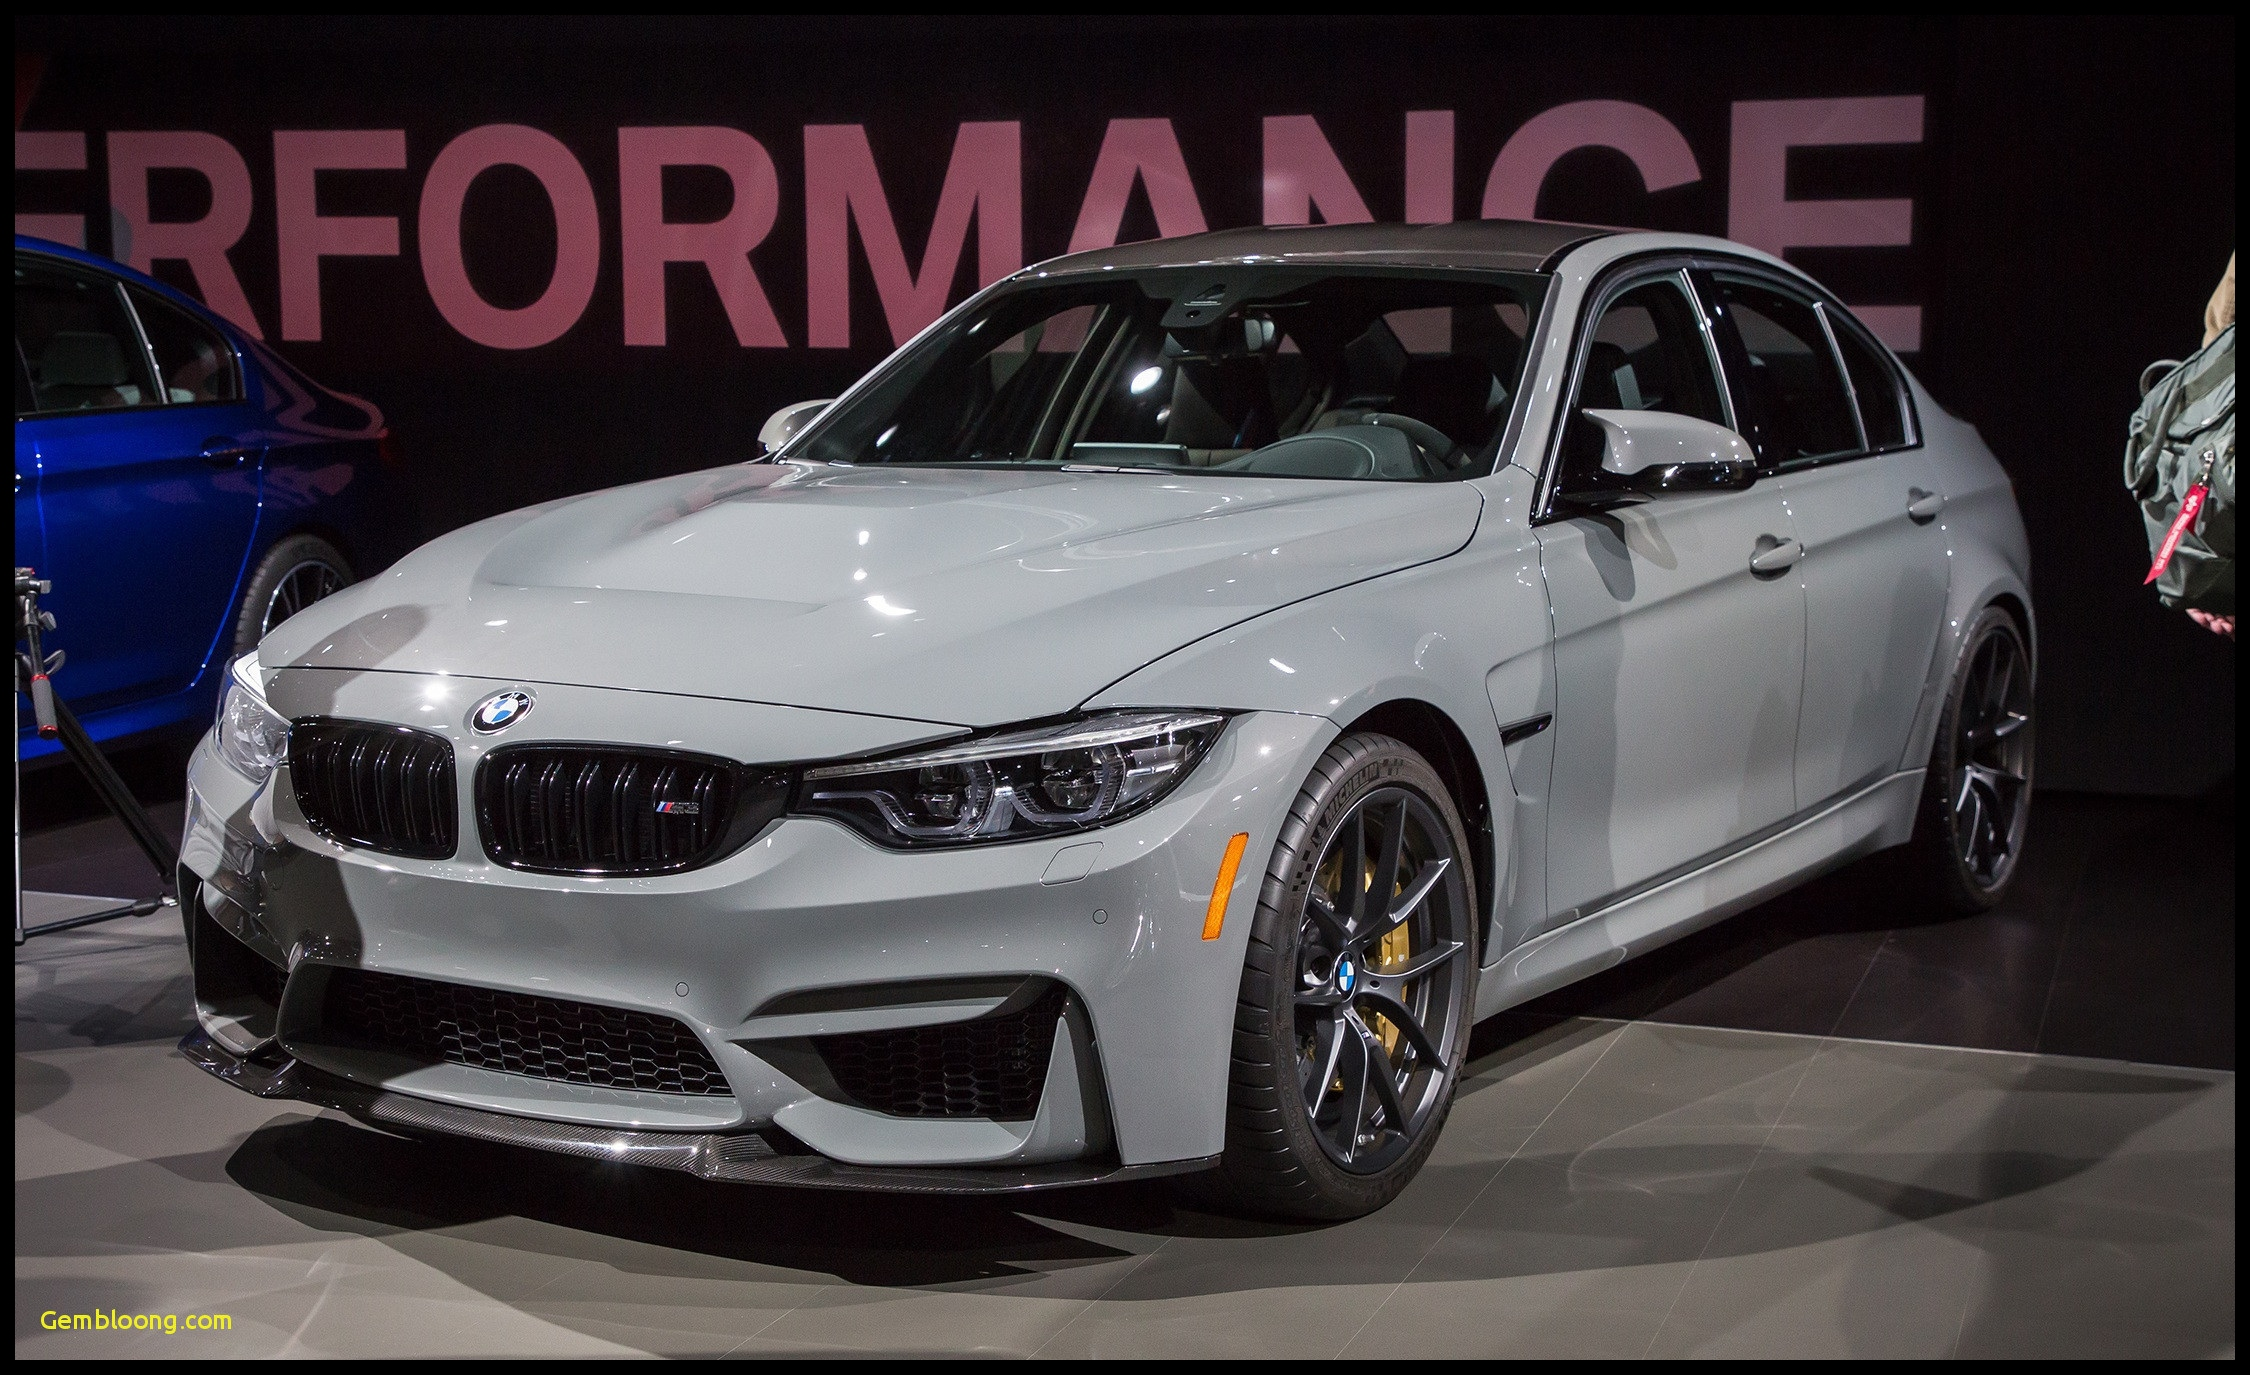 Bmw 5 2018 Review 2018 Bmw M3 M3 2019 2019 Bmw 5 Series Bmw 5 Series